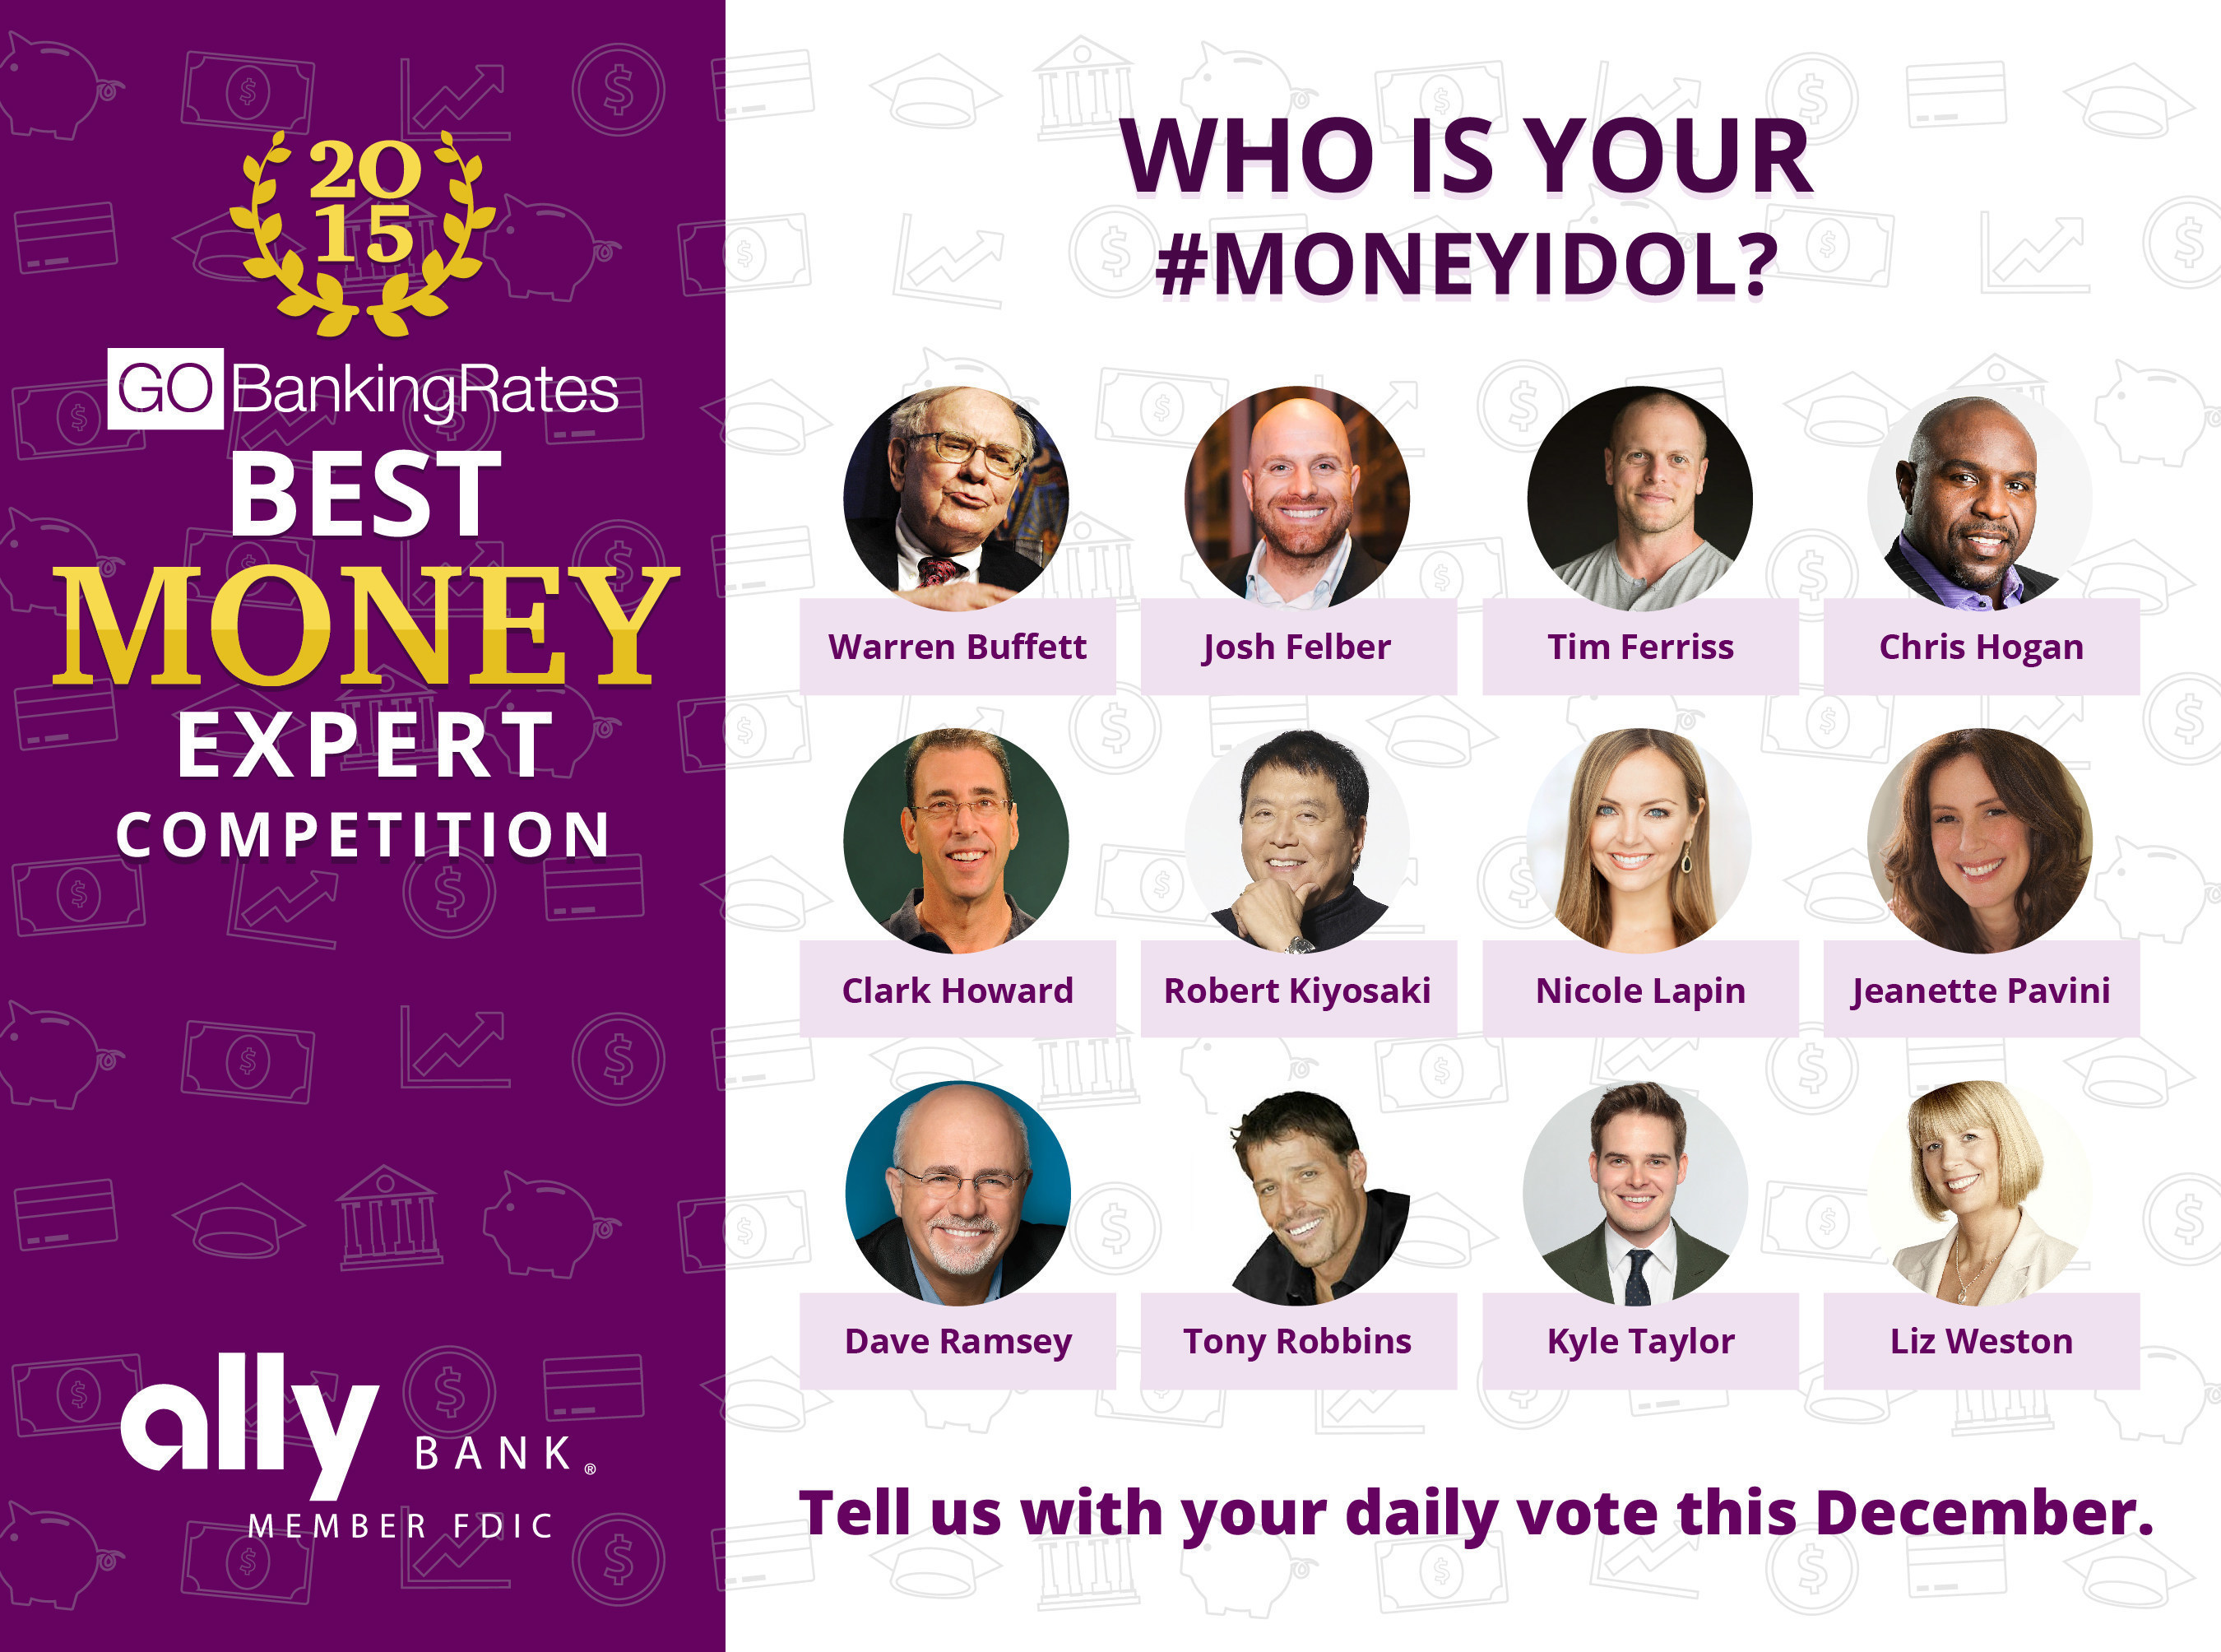 12 Biggest Money Experts of 2015 to Compete in GOBankingRates' 'Best Money Expert' Competition